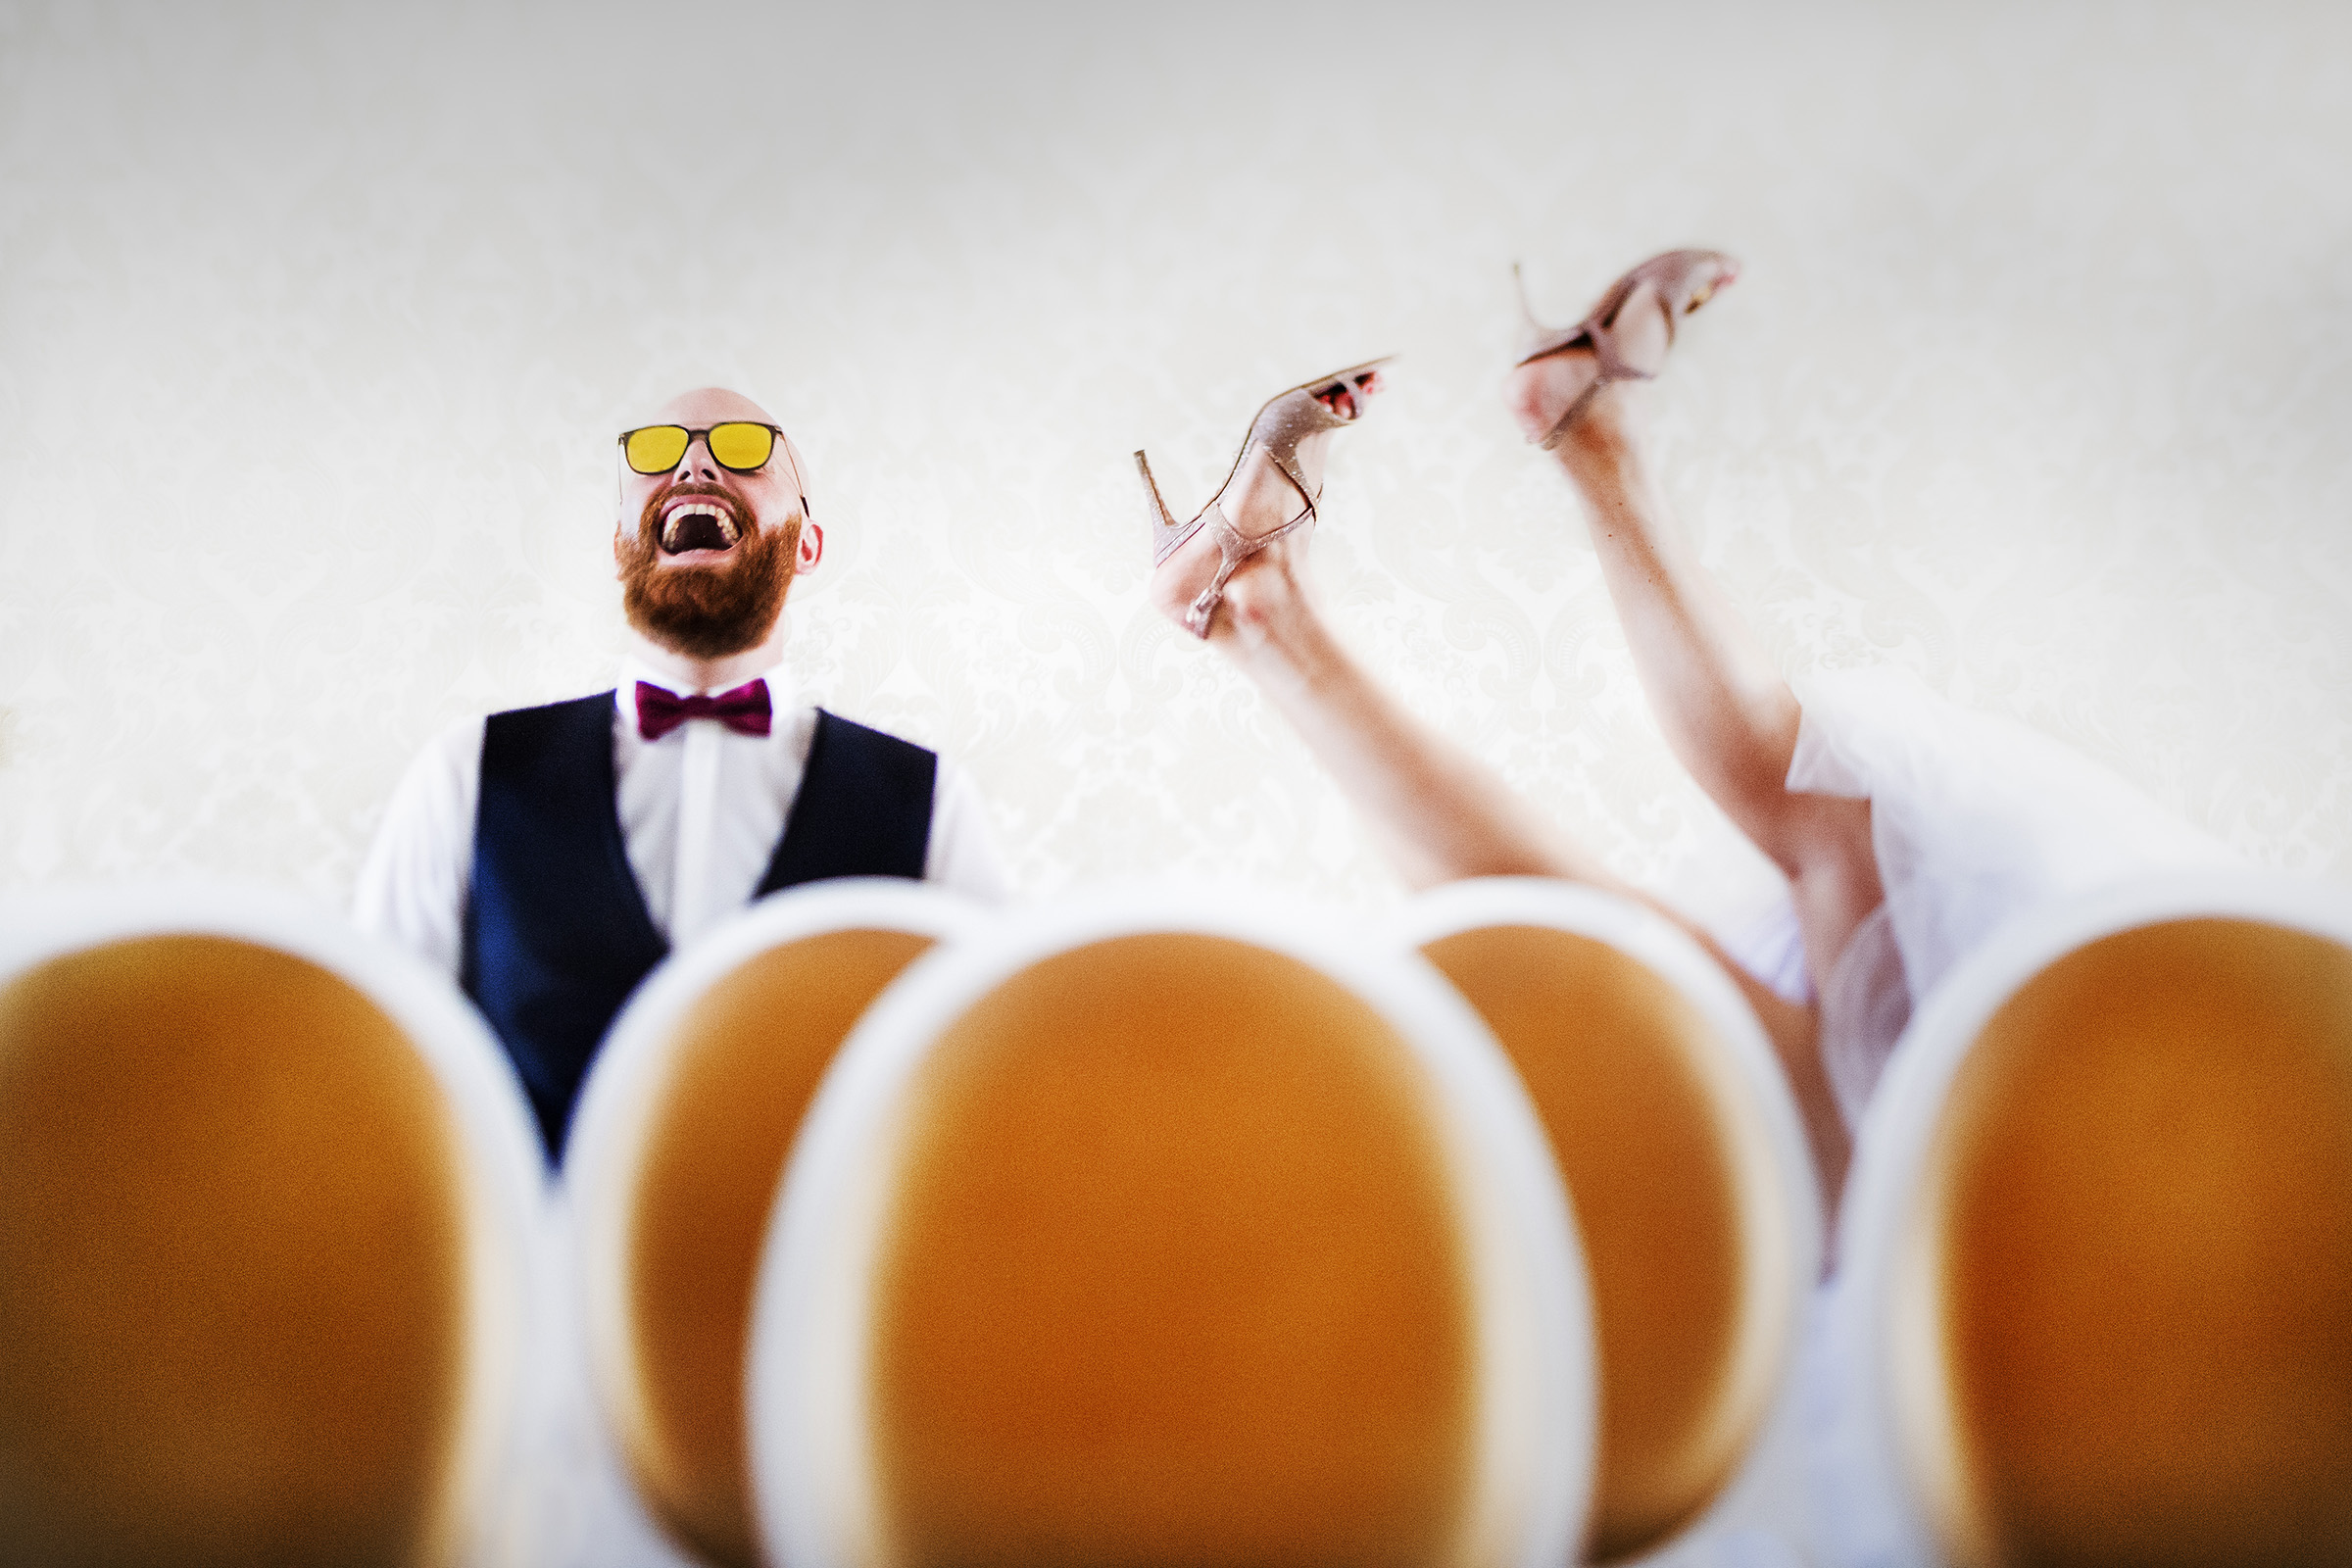 50 best wedding portraits of the decade - photo by Lax Photography